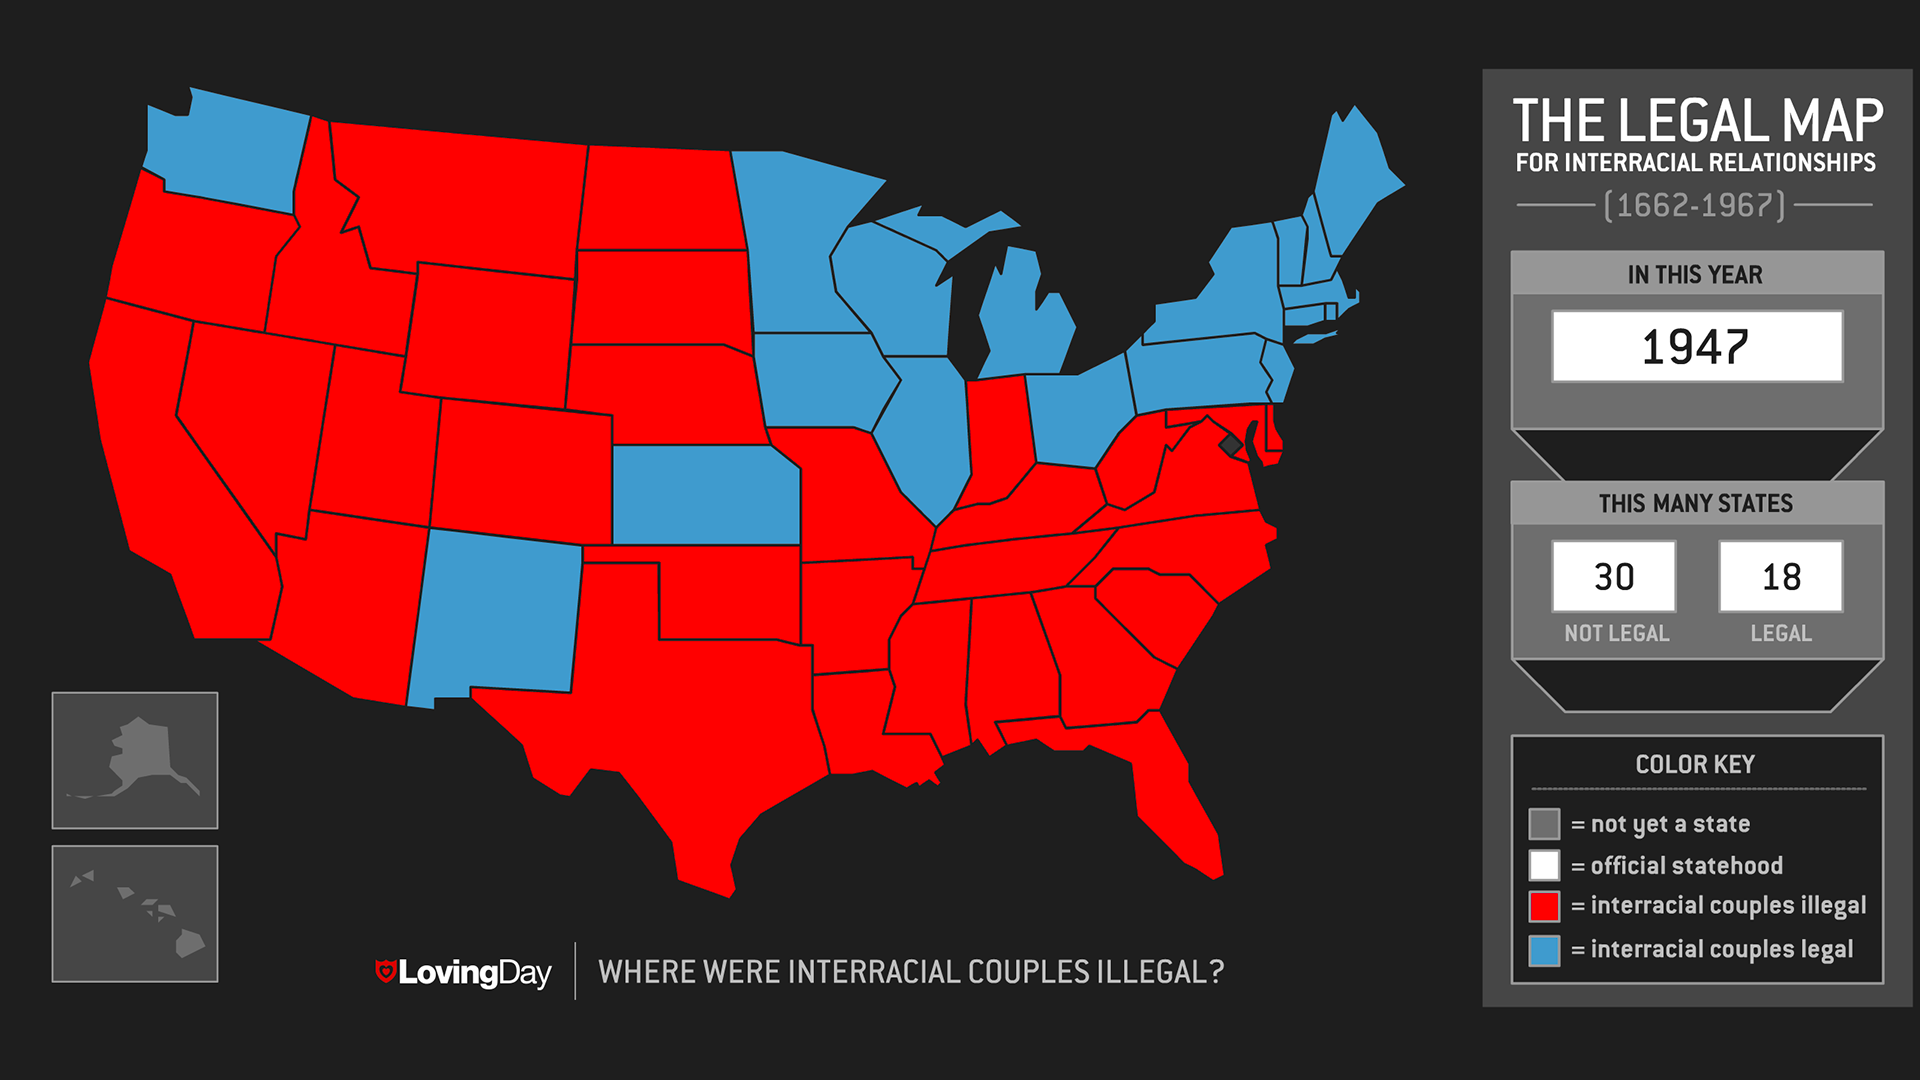 Loving Day: where were interracial couples illegal? The Legal Map for interracial relationships (1662-1967). In this year: 1947. This many states: 30 not legal, 18 legal. Interracial couples are illegal in most states in the southeast, southwest, northwest, and west regions.